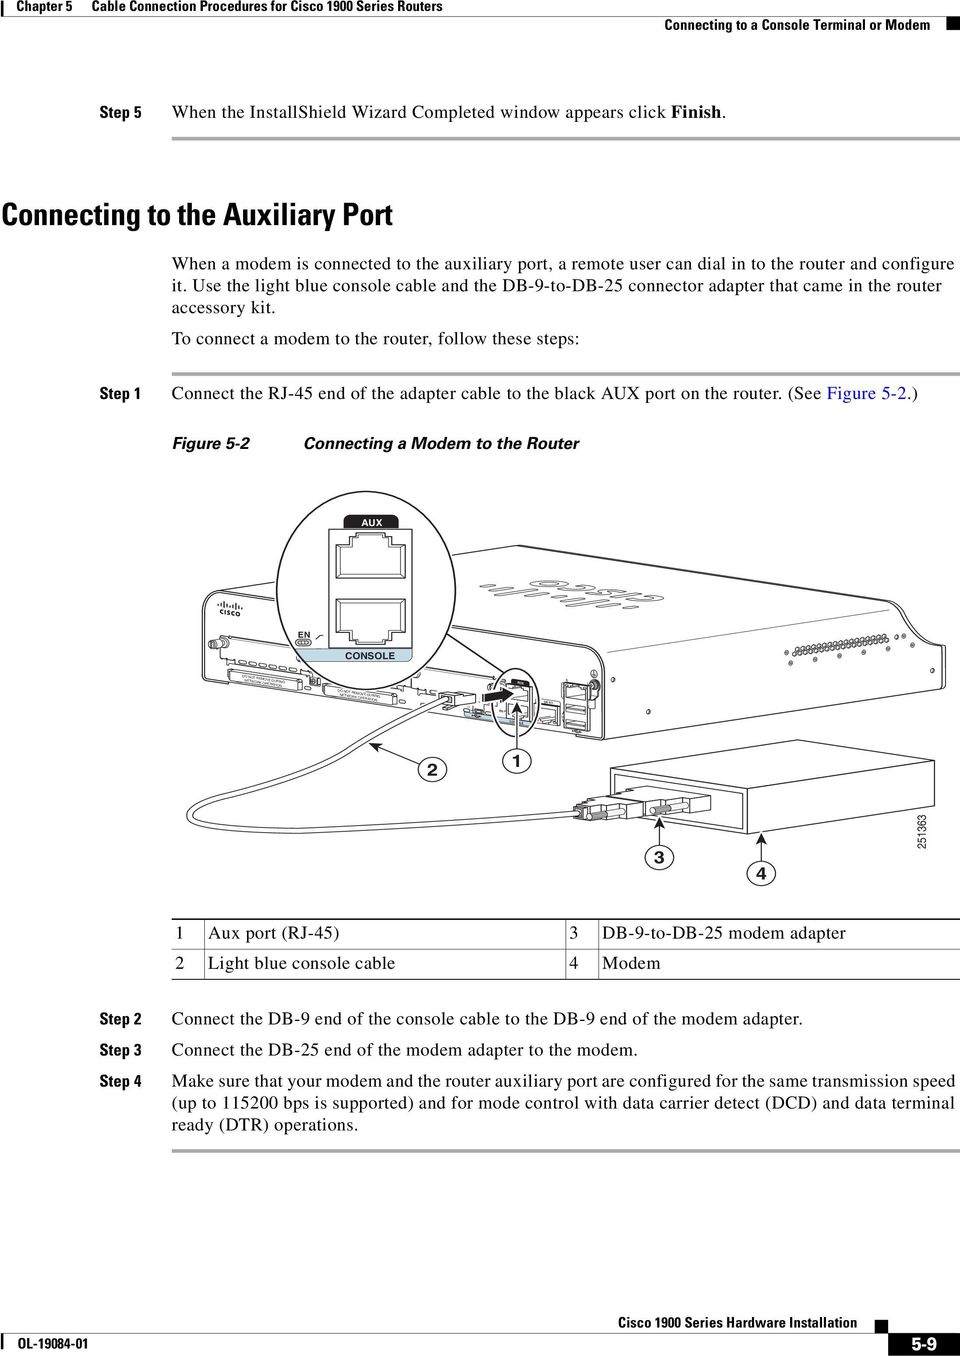 Cable Connection Procedures For Cisco 1900 Series Routers Pdf Rollover Diagram Use The Light Blue Console And Db 9 To